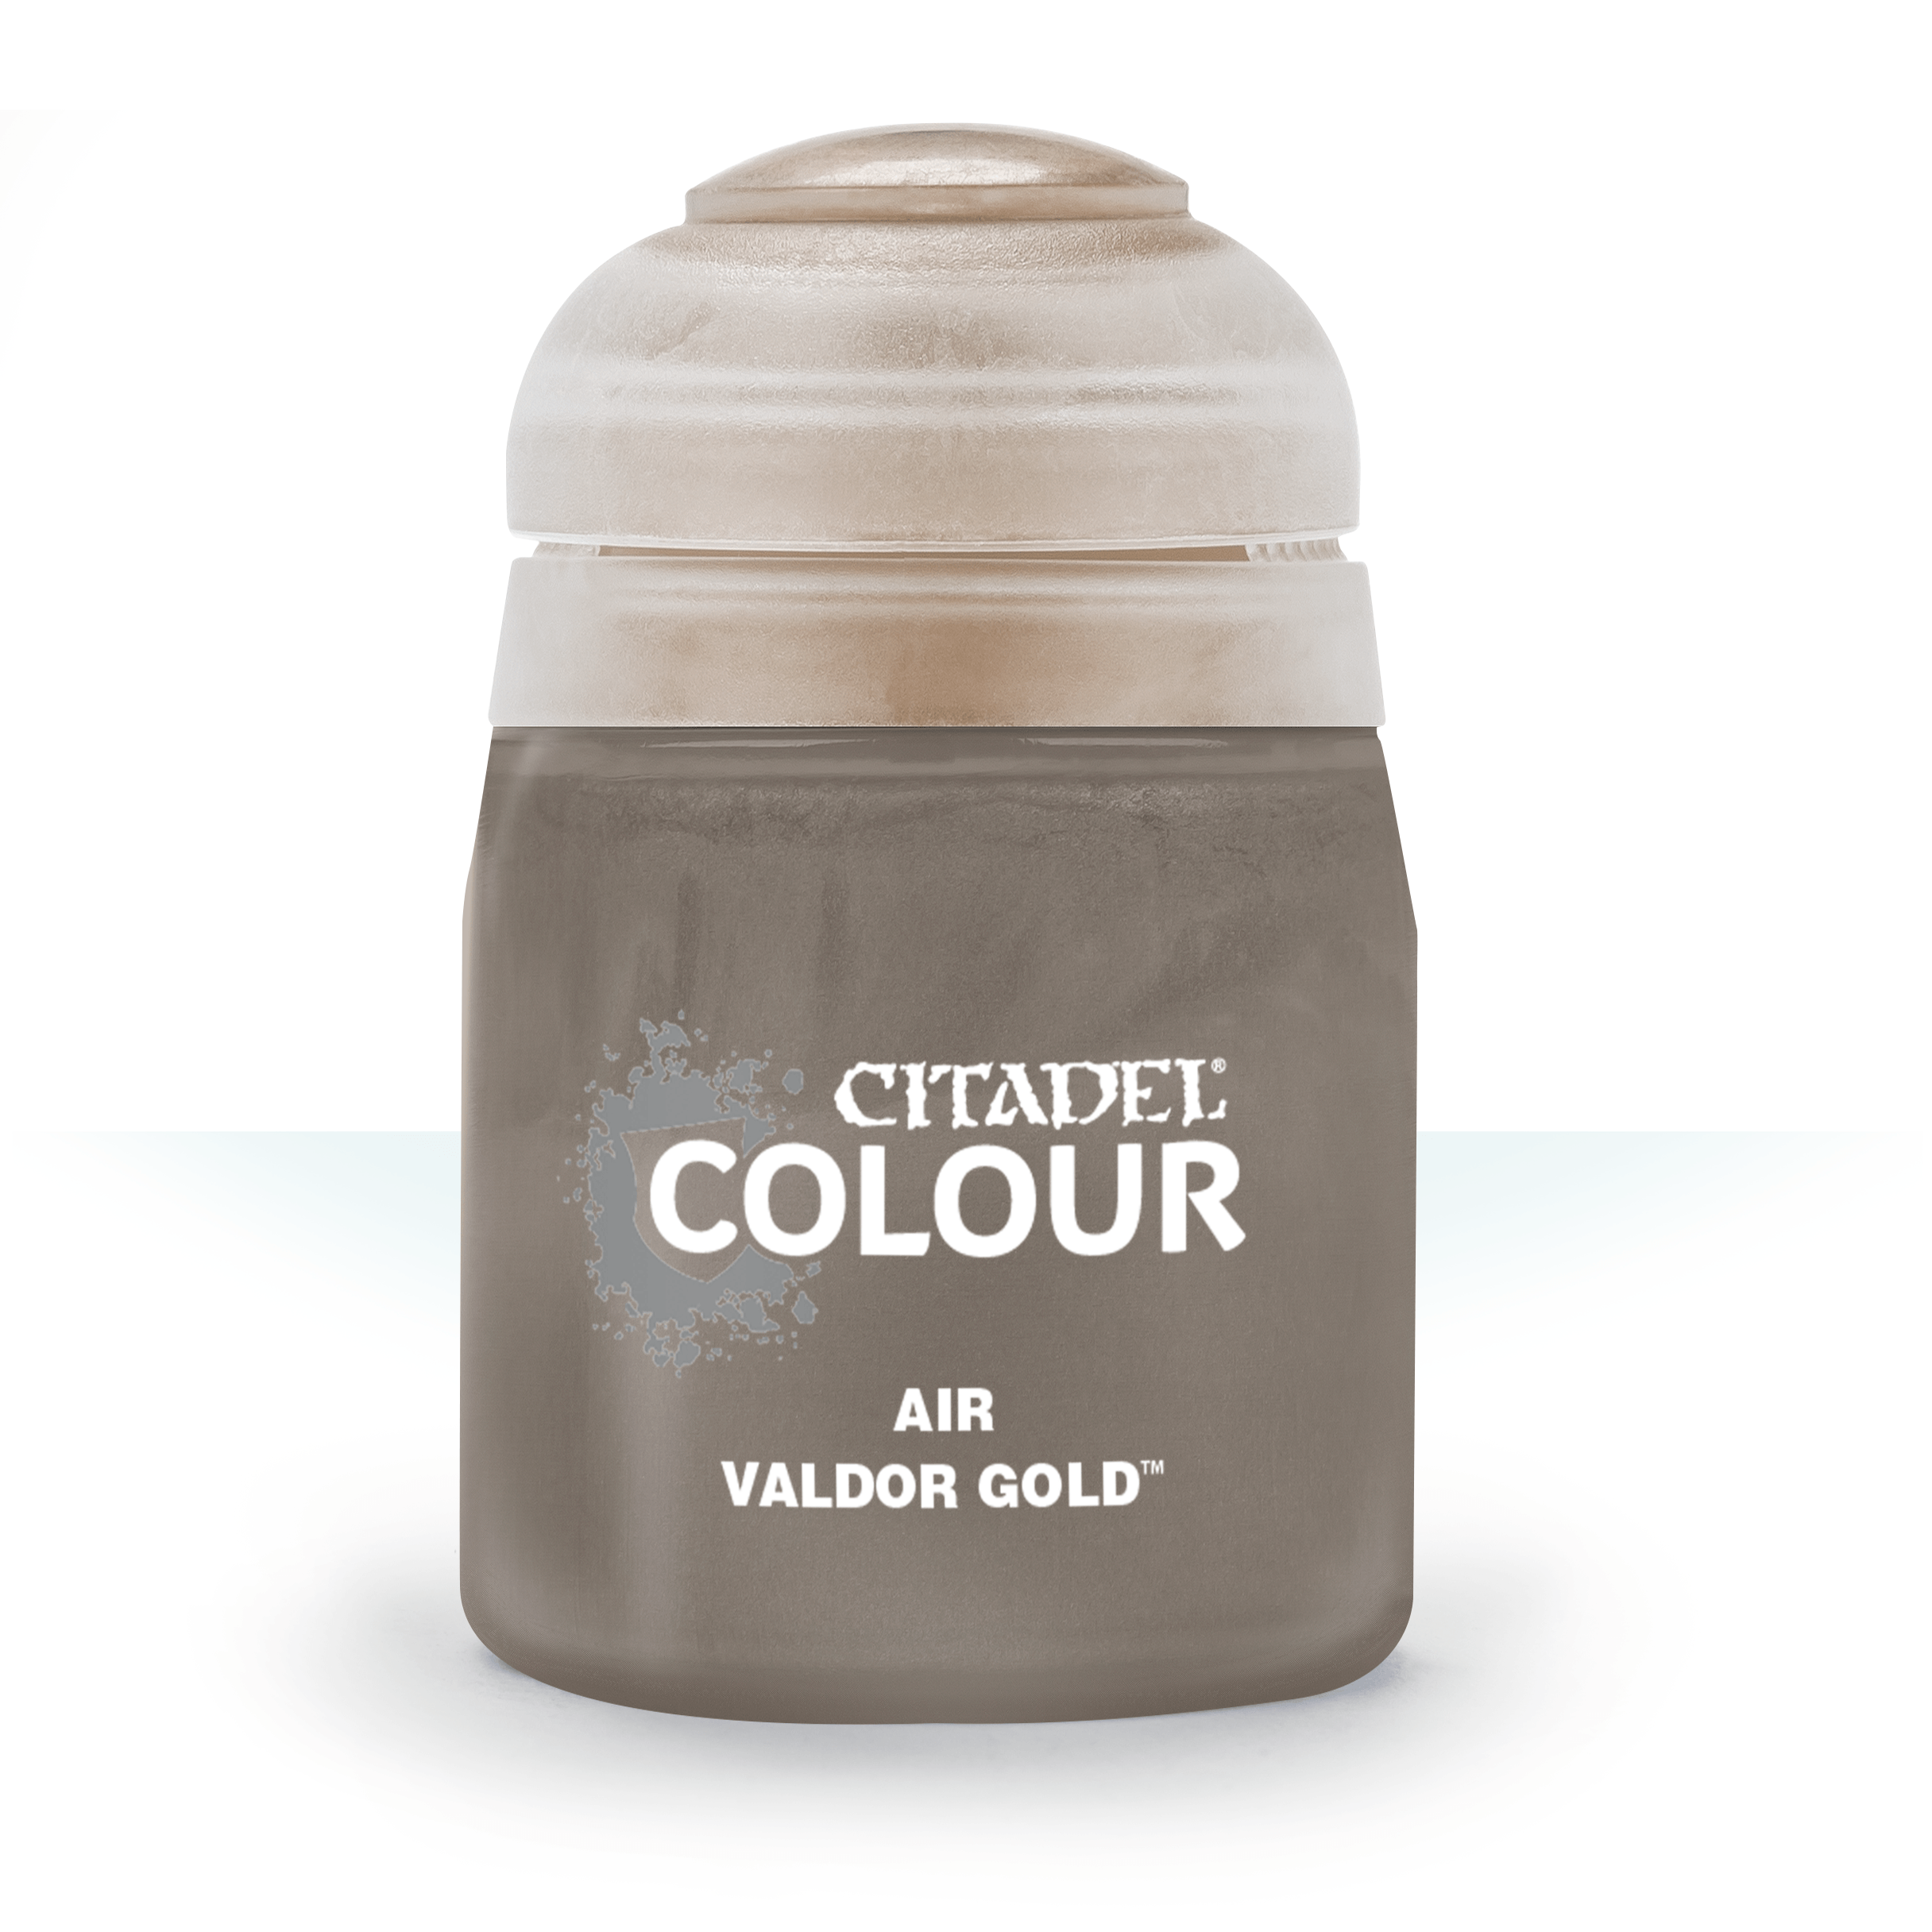 Citadel Airbrush Paints: Valdor Gold